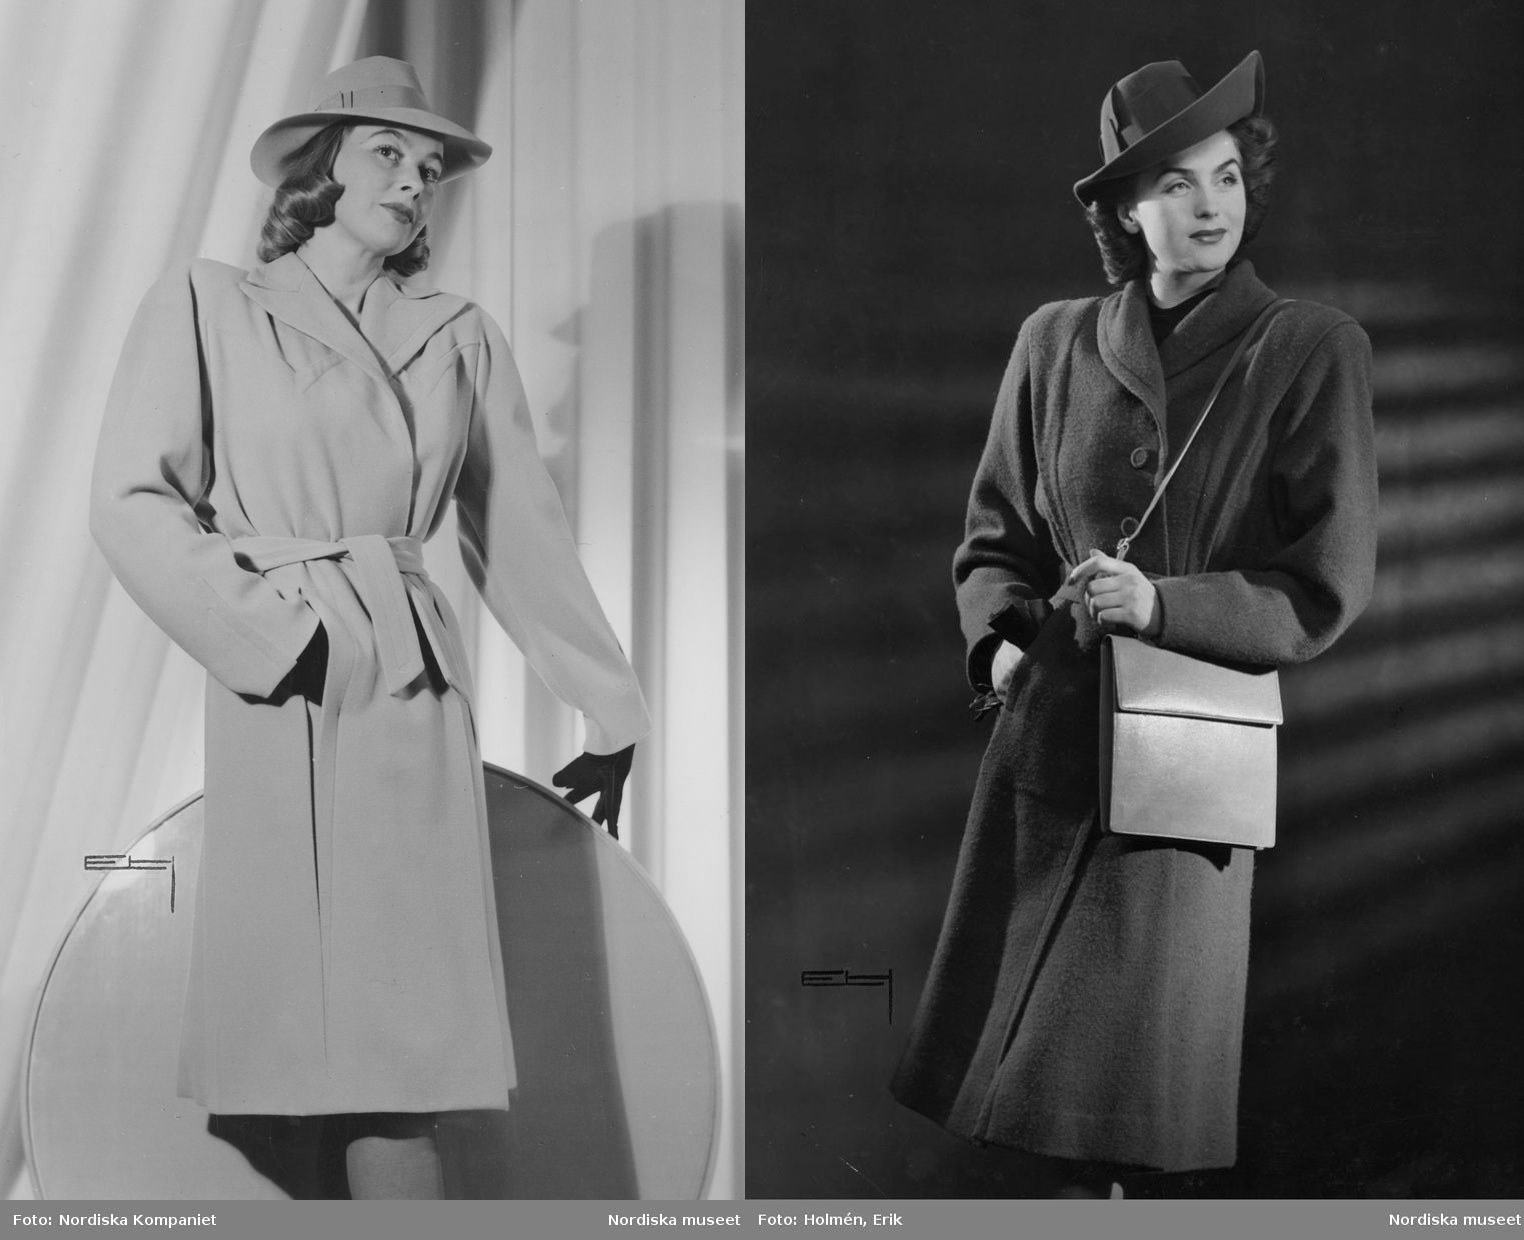 Popular-1940s-single-belted-mannish-coat-and-hat-fashions-1943